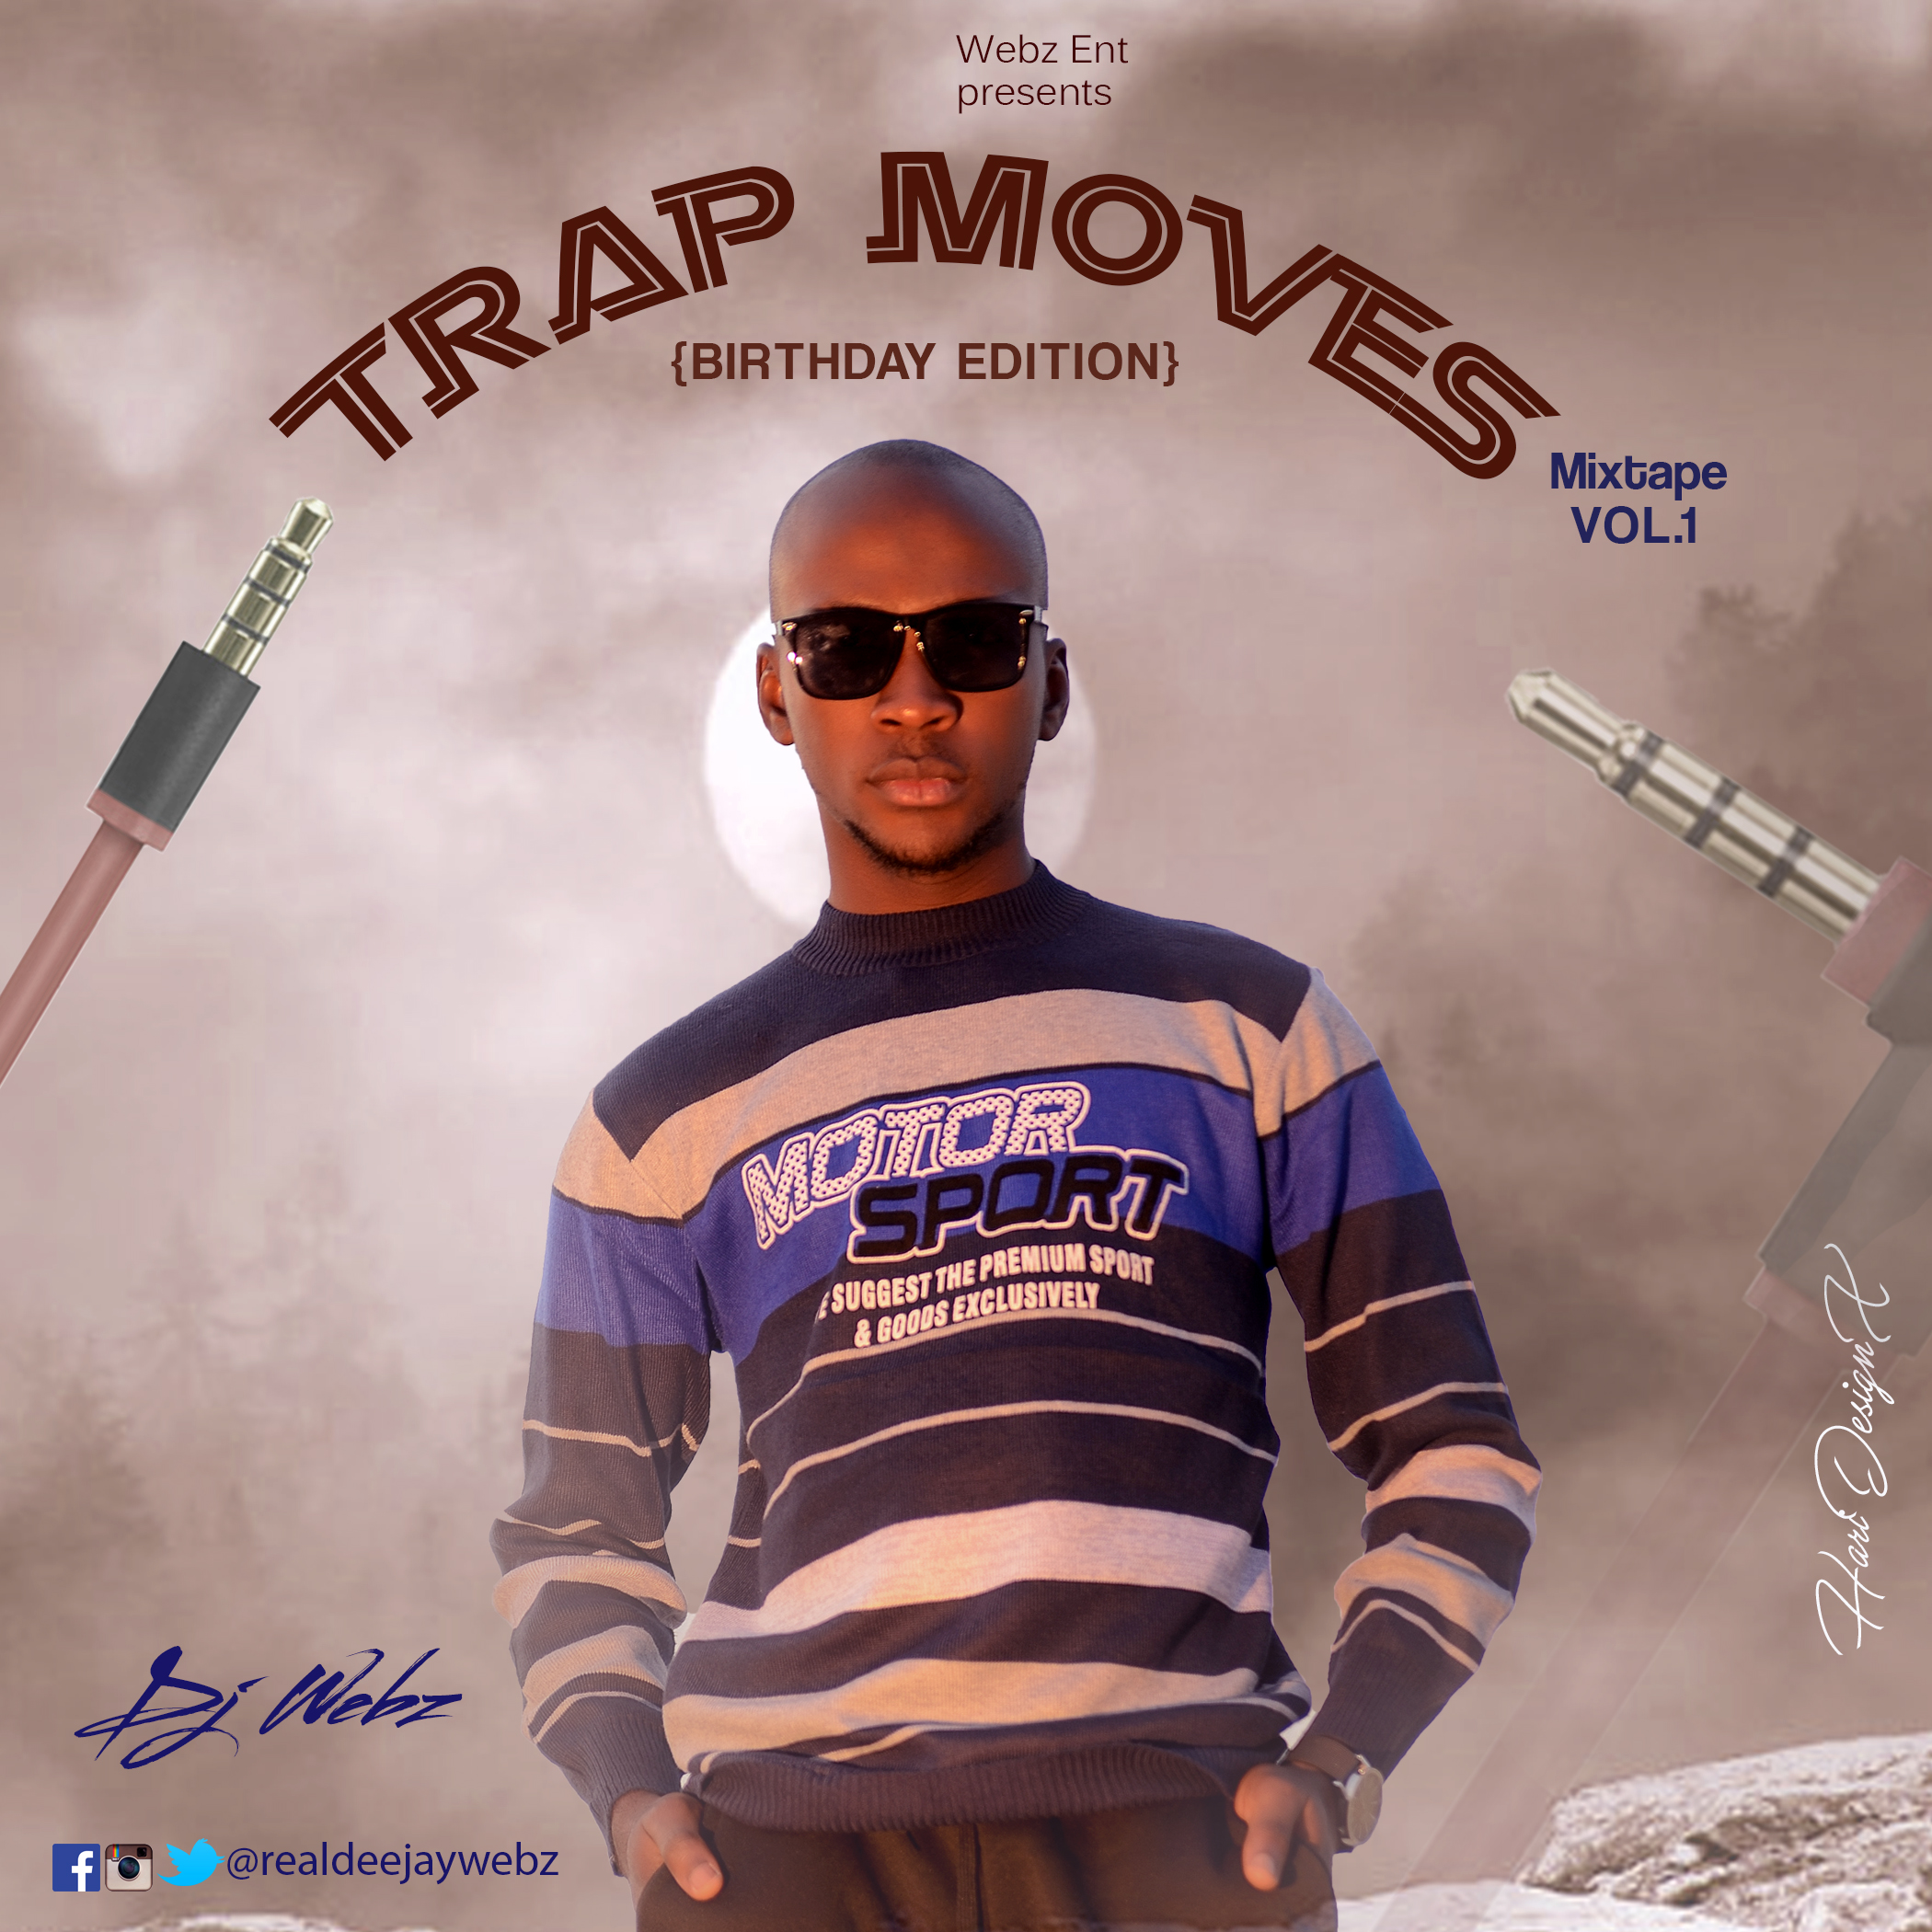 f439383d01b33 MIXTAPE  DJ webz- Trap moves vol. 1  realdeejaywebz - Freesami Media ...